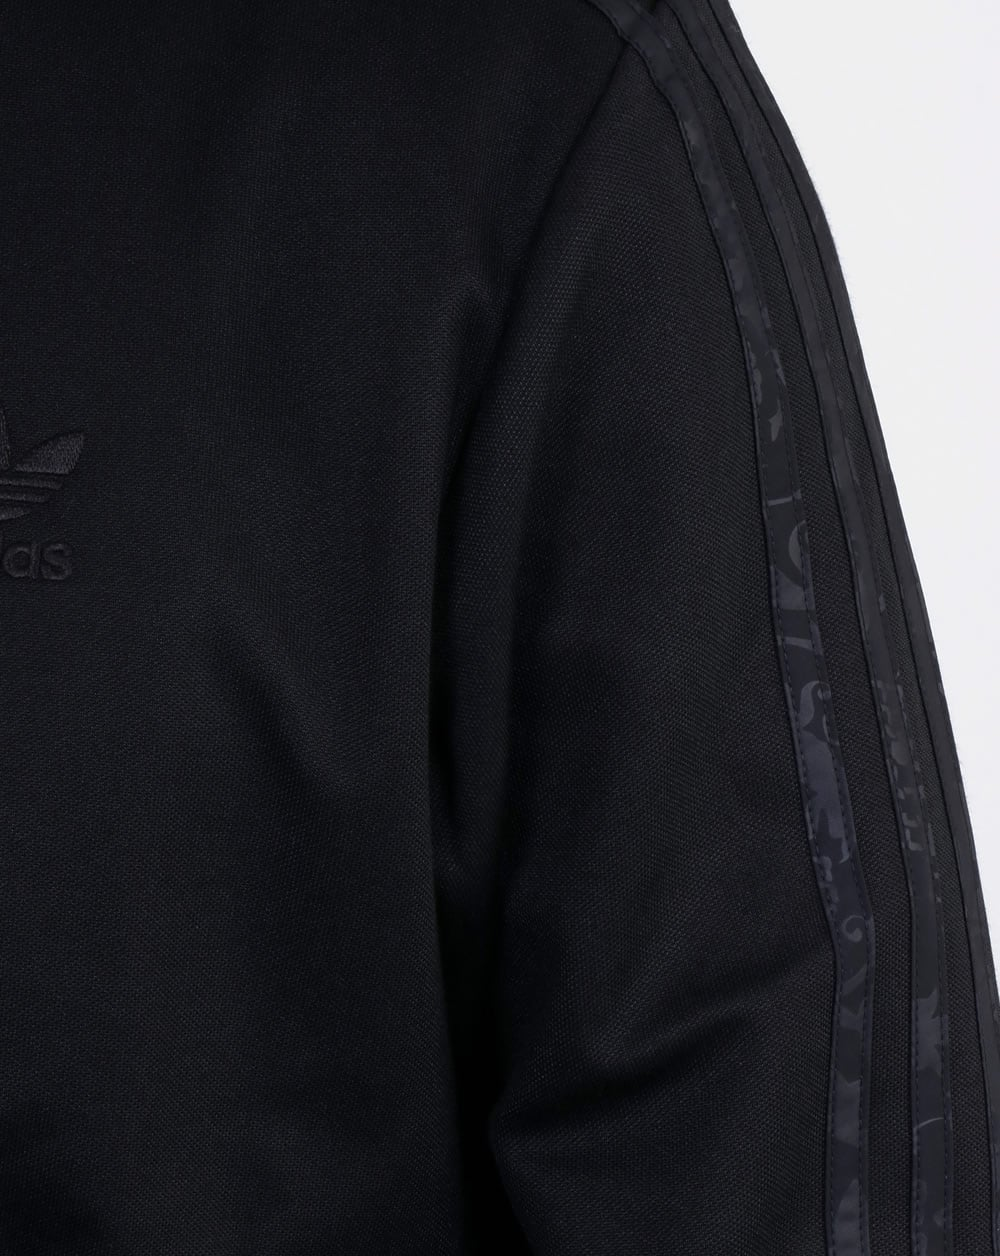 adidas originals beckenbauer track top black